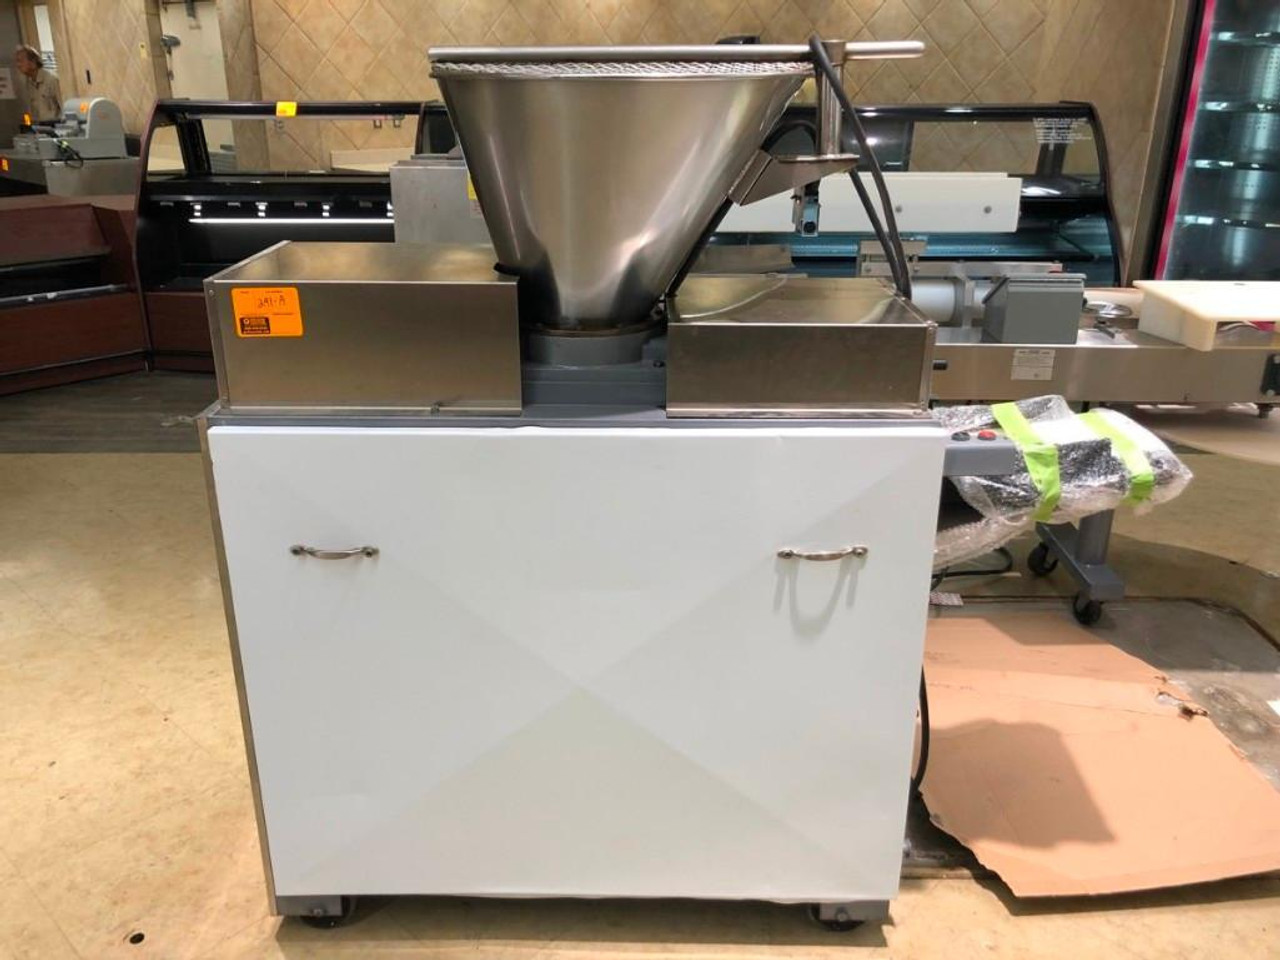 Excellent Bakery Automatic Bagel Maker KSF300S KFD100 with Dough Divider